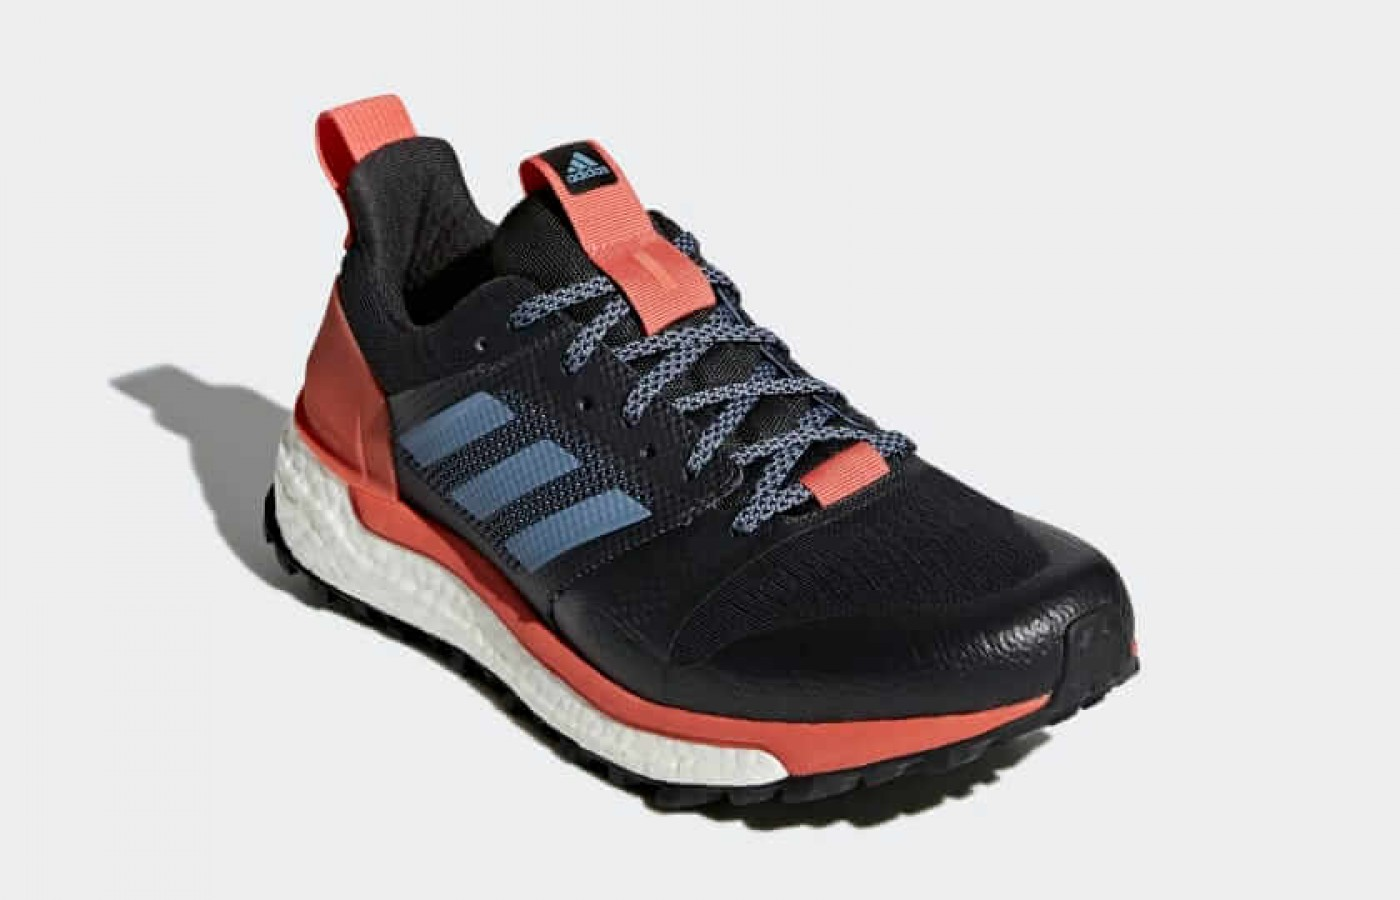 The Adidas Supernova Trail front angled perspective